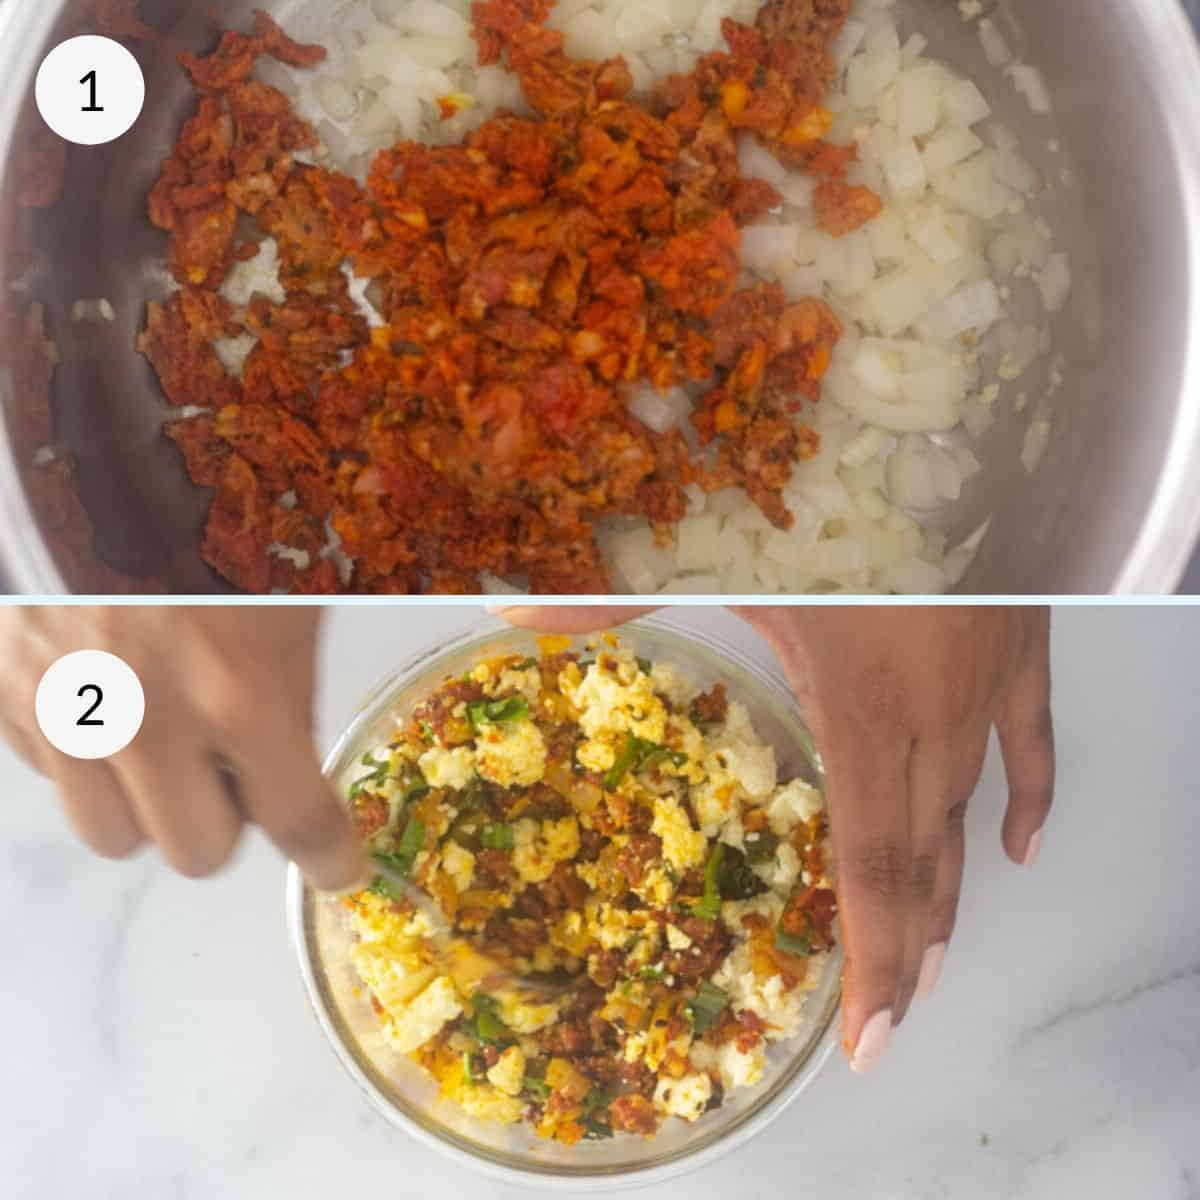 cooking the stuffing and mixing with cheese in a bowl.